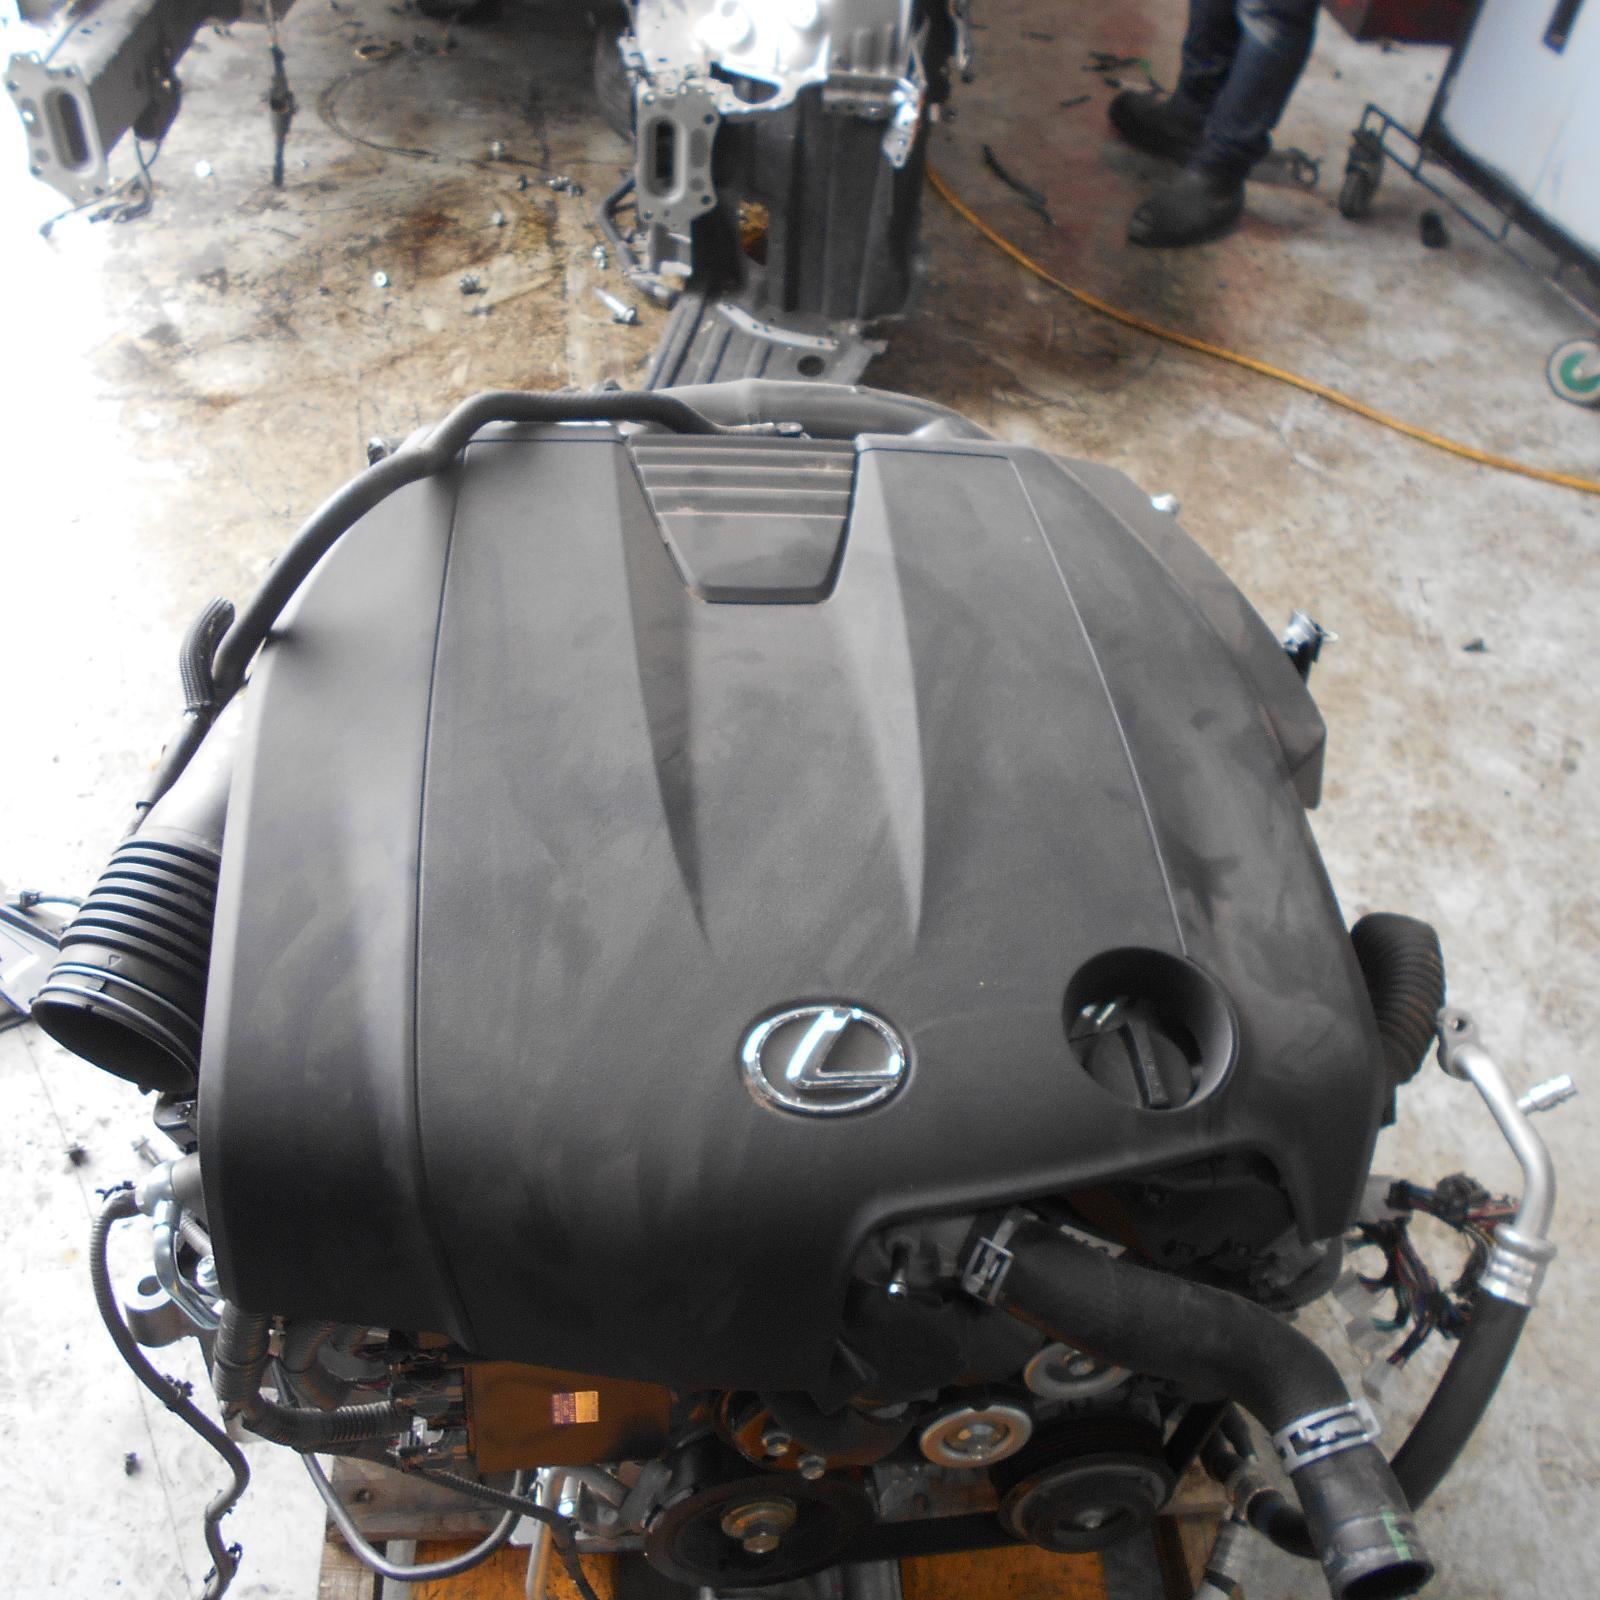 LEXUS IS, Engine, IS250, PETROL, 2.5, 4GR-FSE, XE30, 07/13-08/15